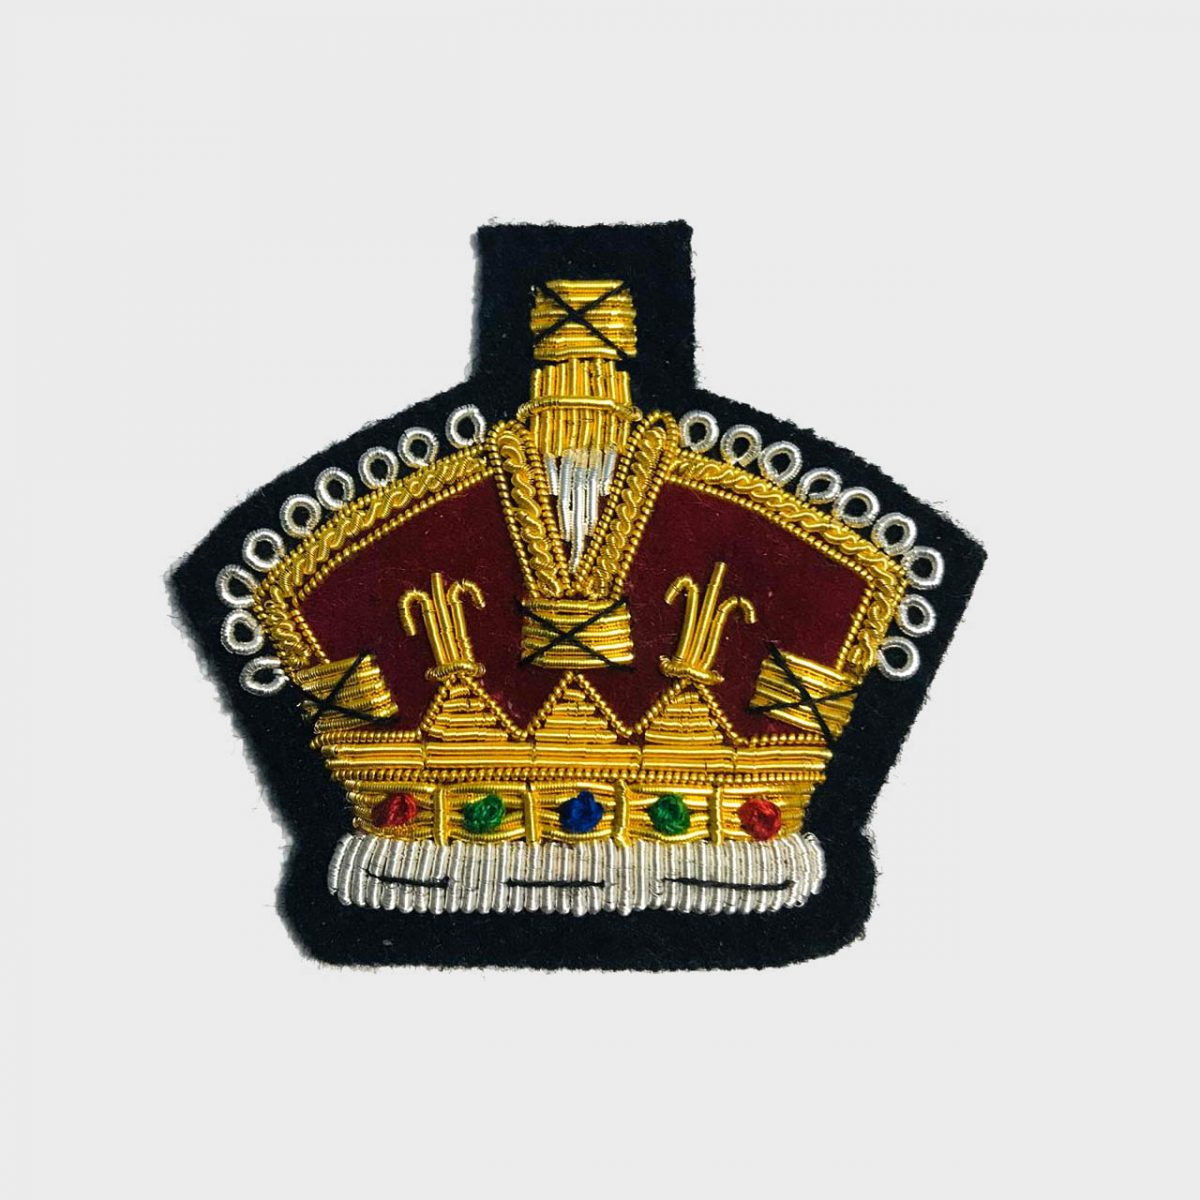 Crown Bullion Embroidered Blazer Crest Patch - Fashionable 3D embroidered Crown CrestMade by skilled artisansBullion wire hand Stitched on Black colour FeltSize is approx 2x2 inchessew-on backing only 4